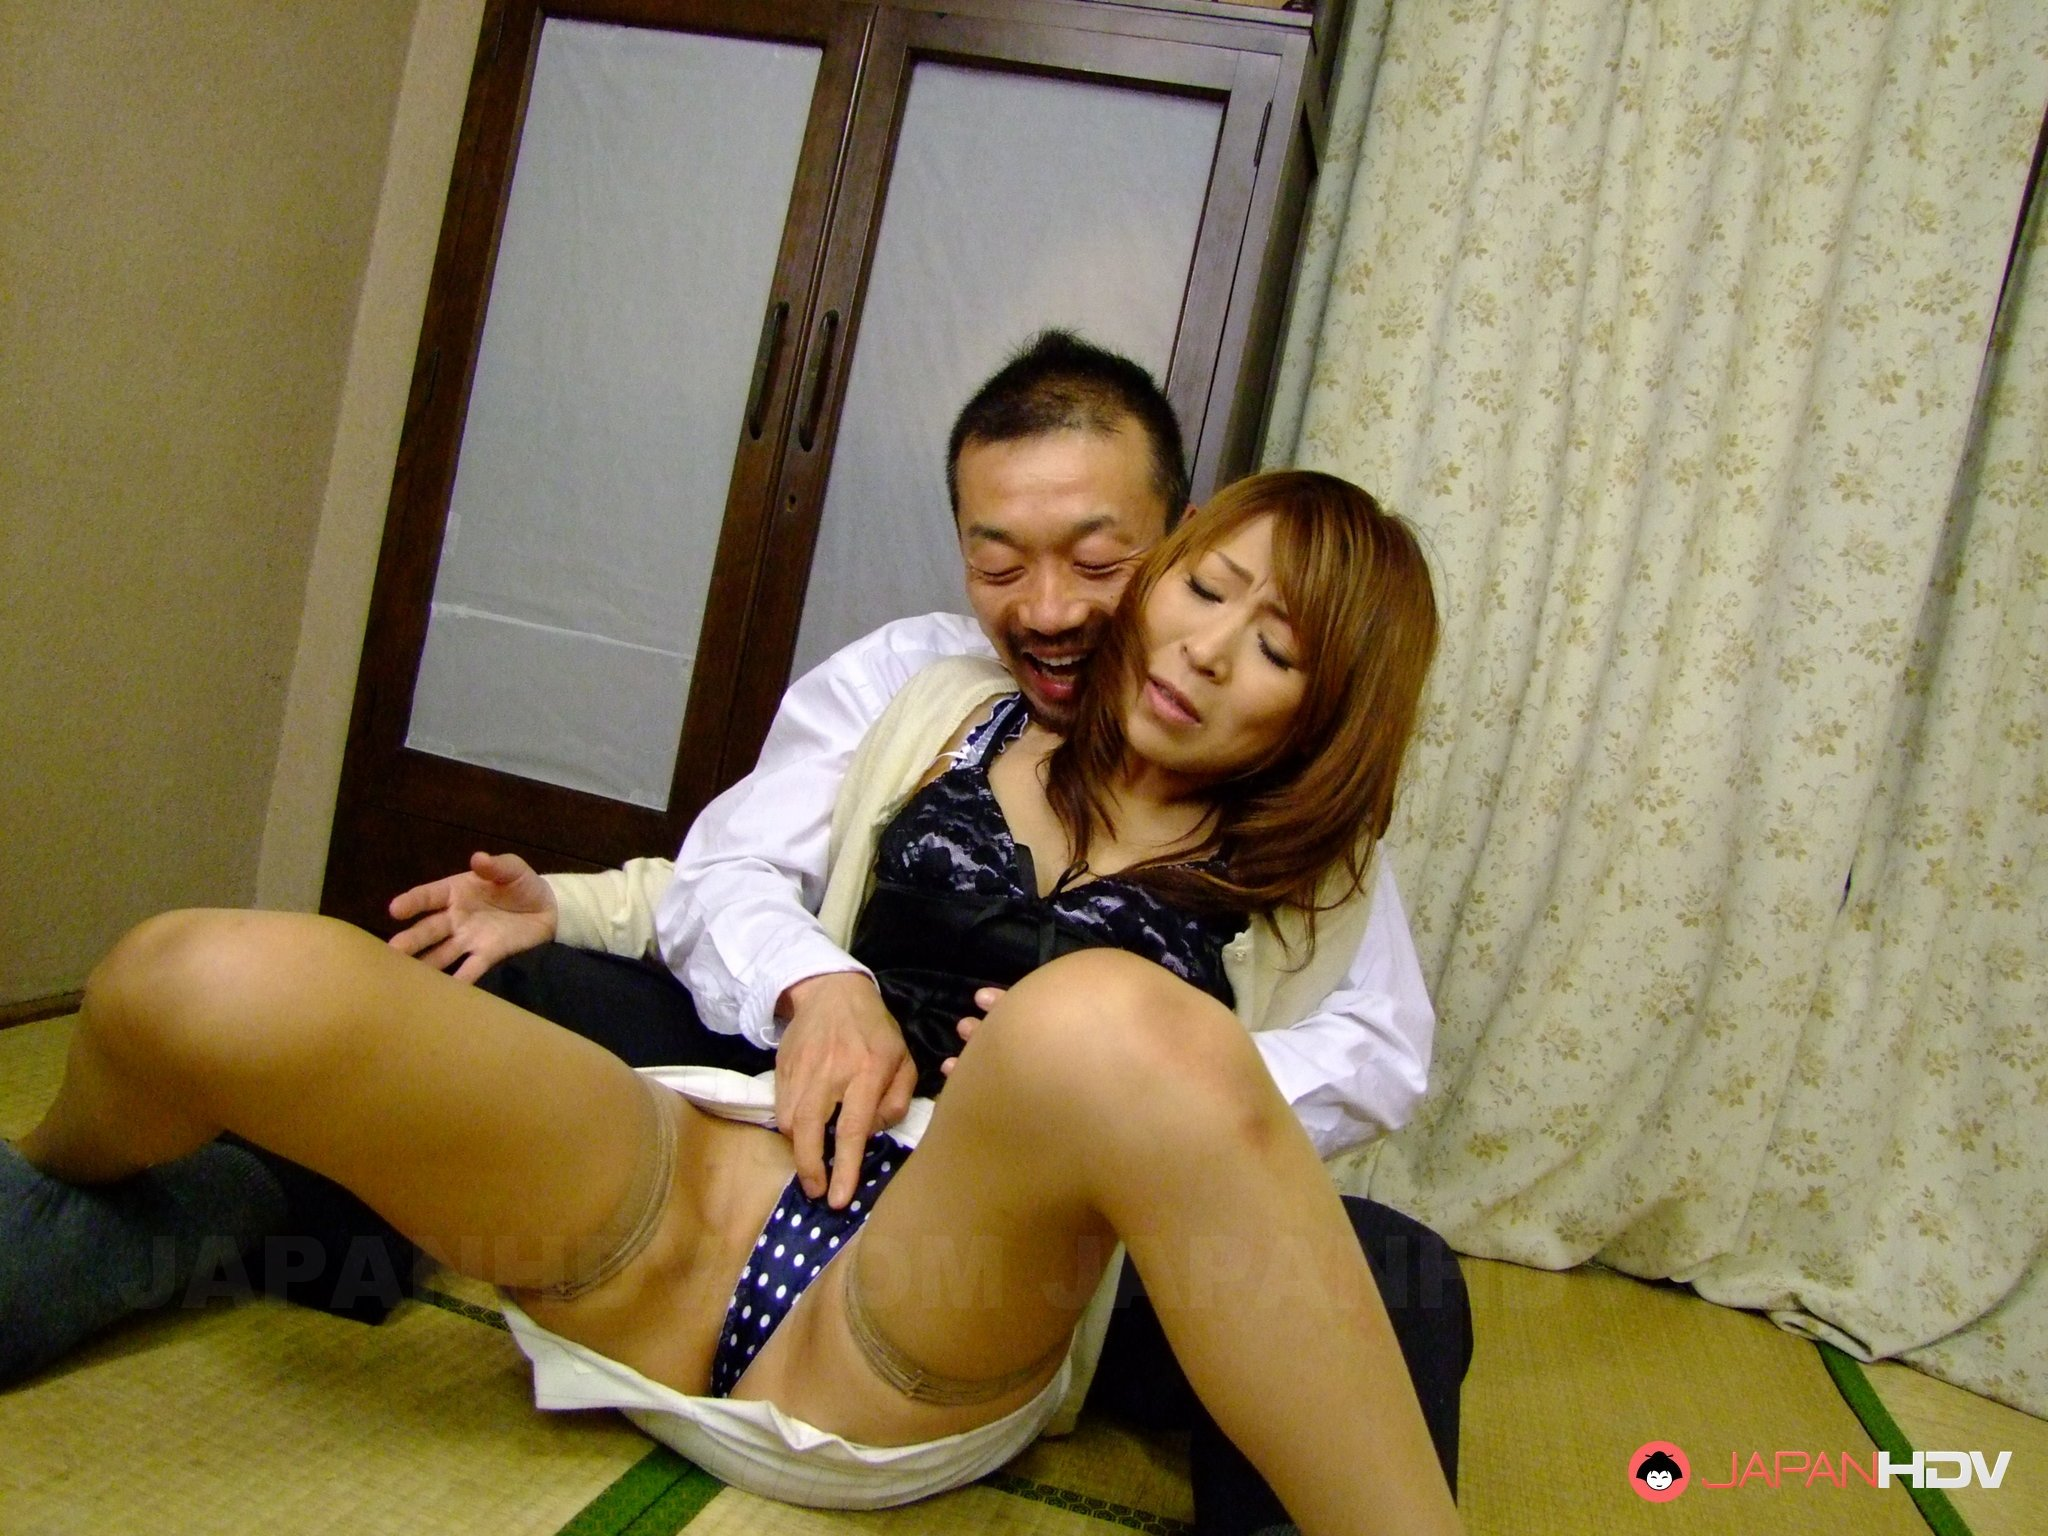 Asian family generations Amateur sex gangbang video 6